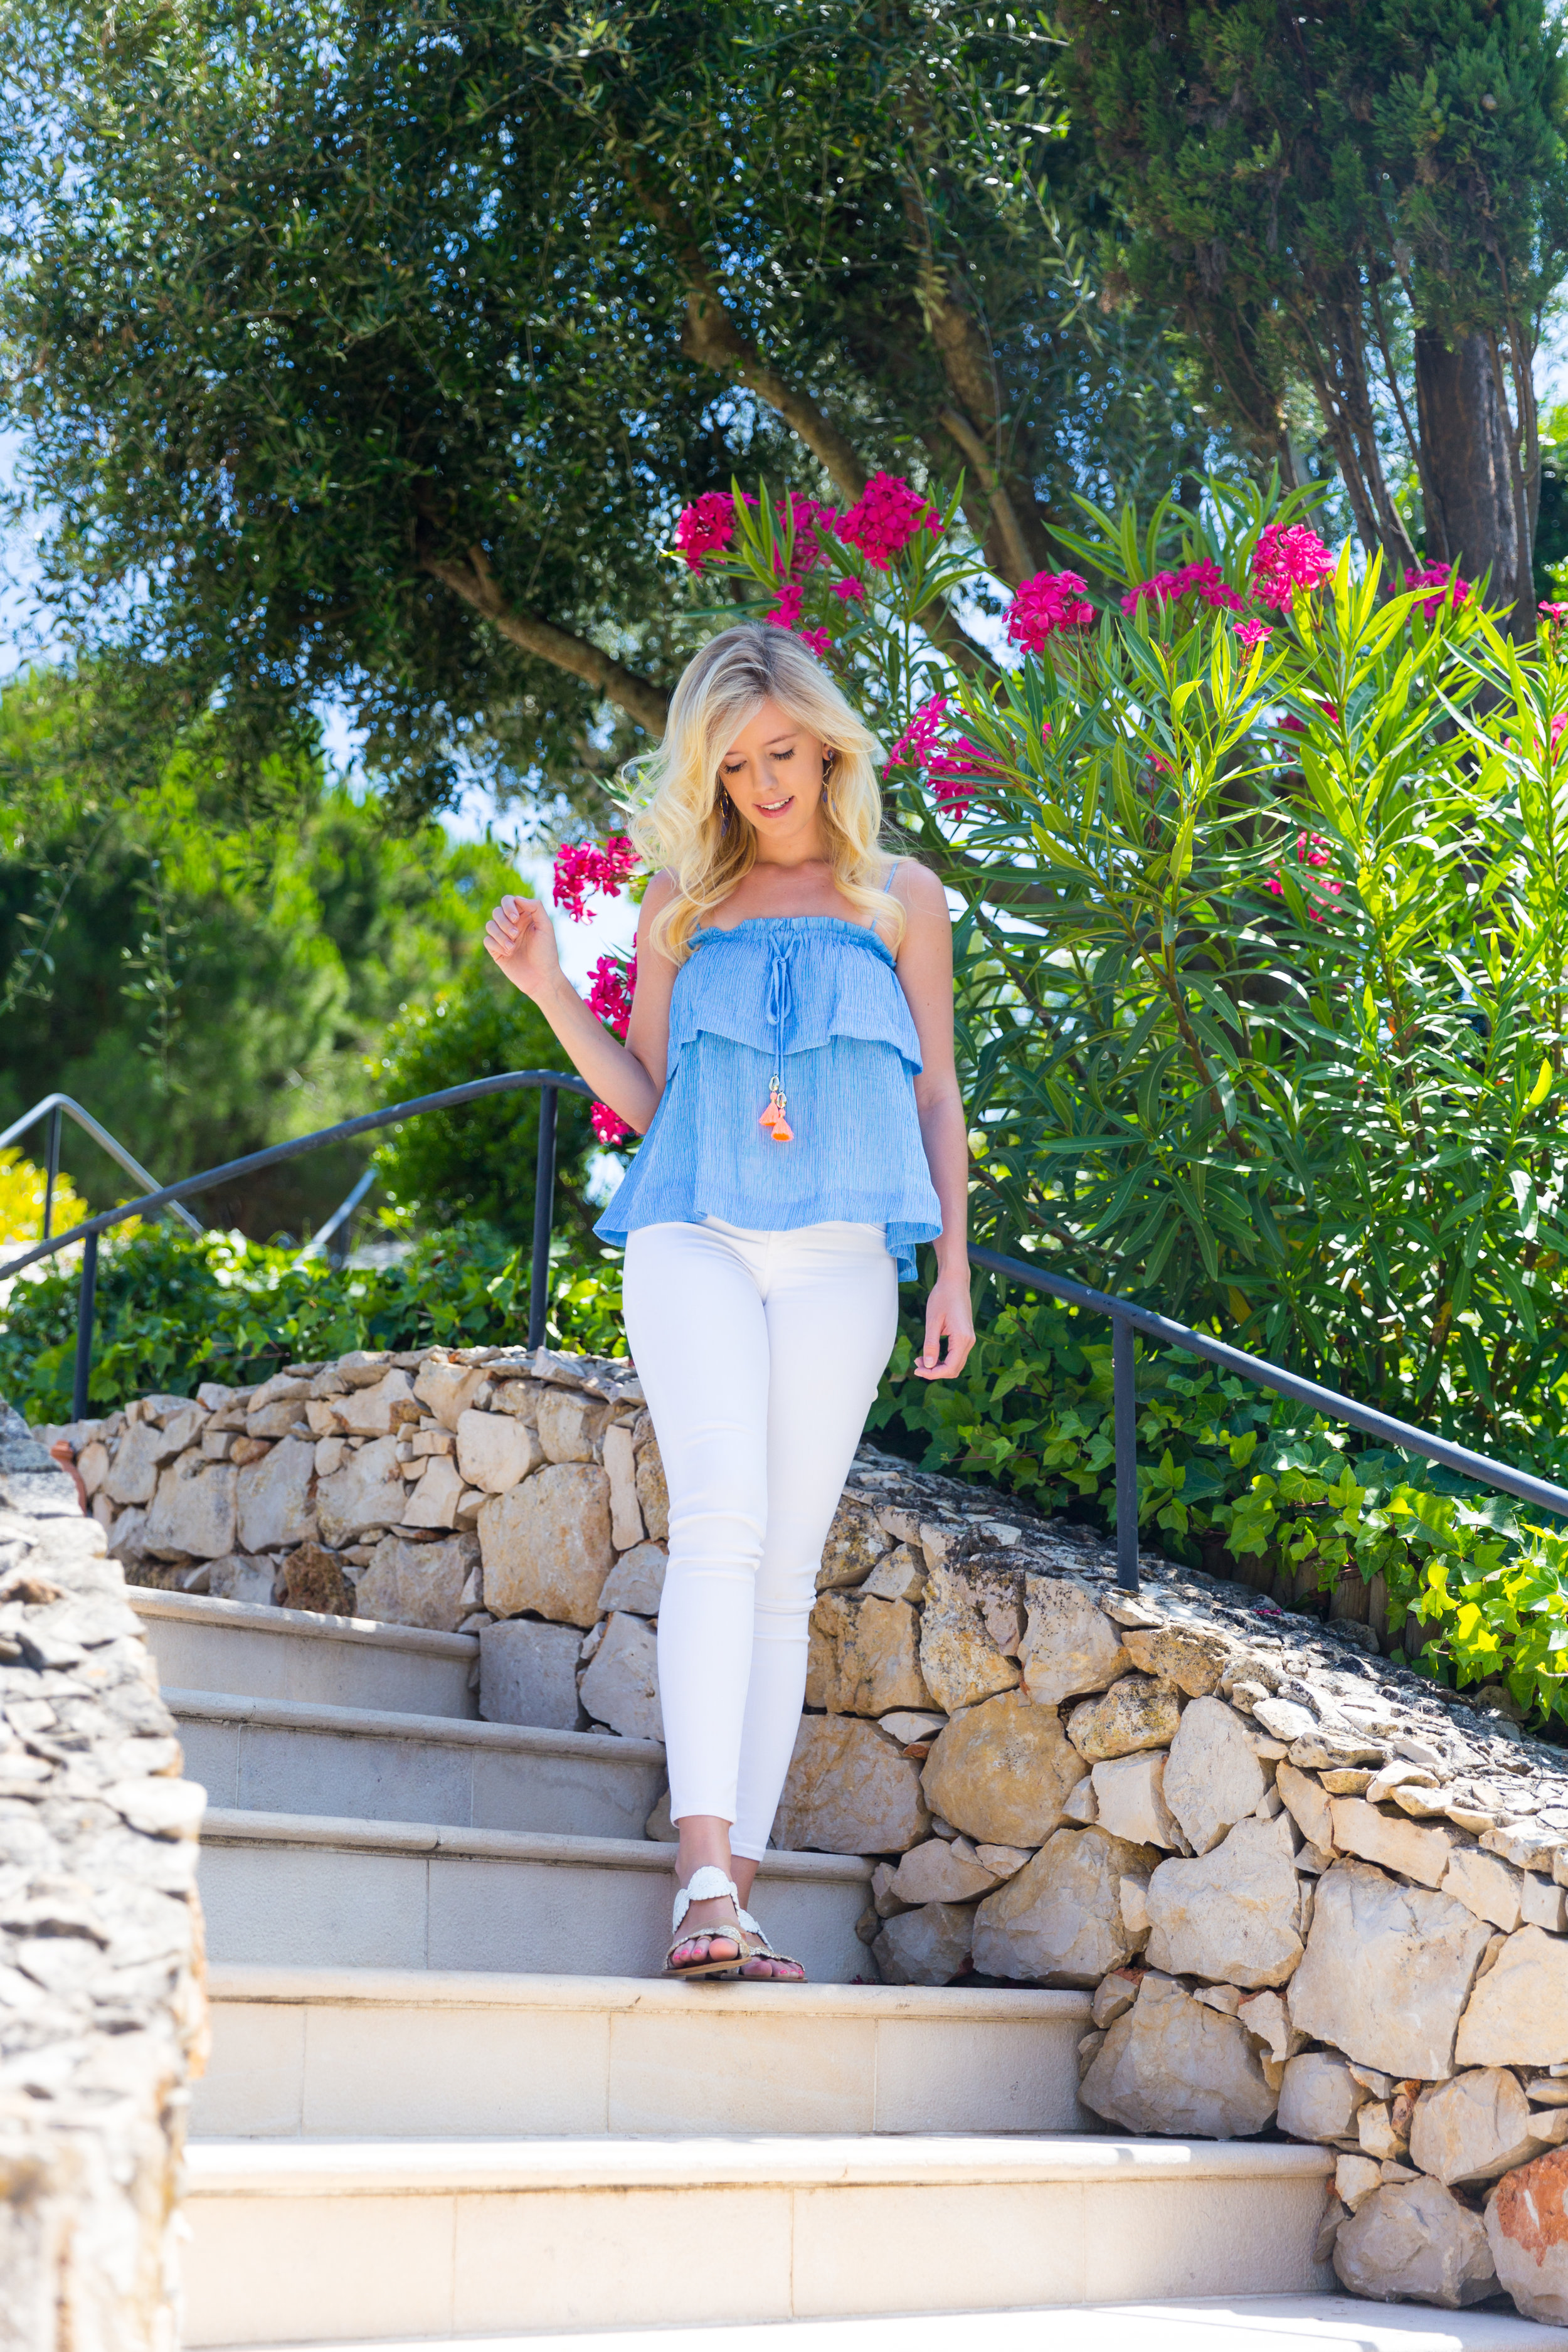 Portugal Algarve Summer Fashion Lilly Pulitzer Top White Jeans-3.jpg